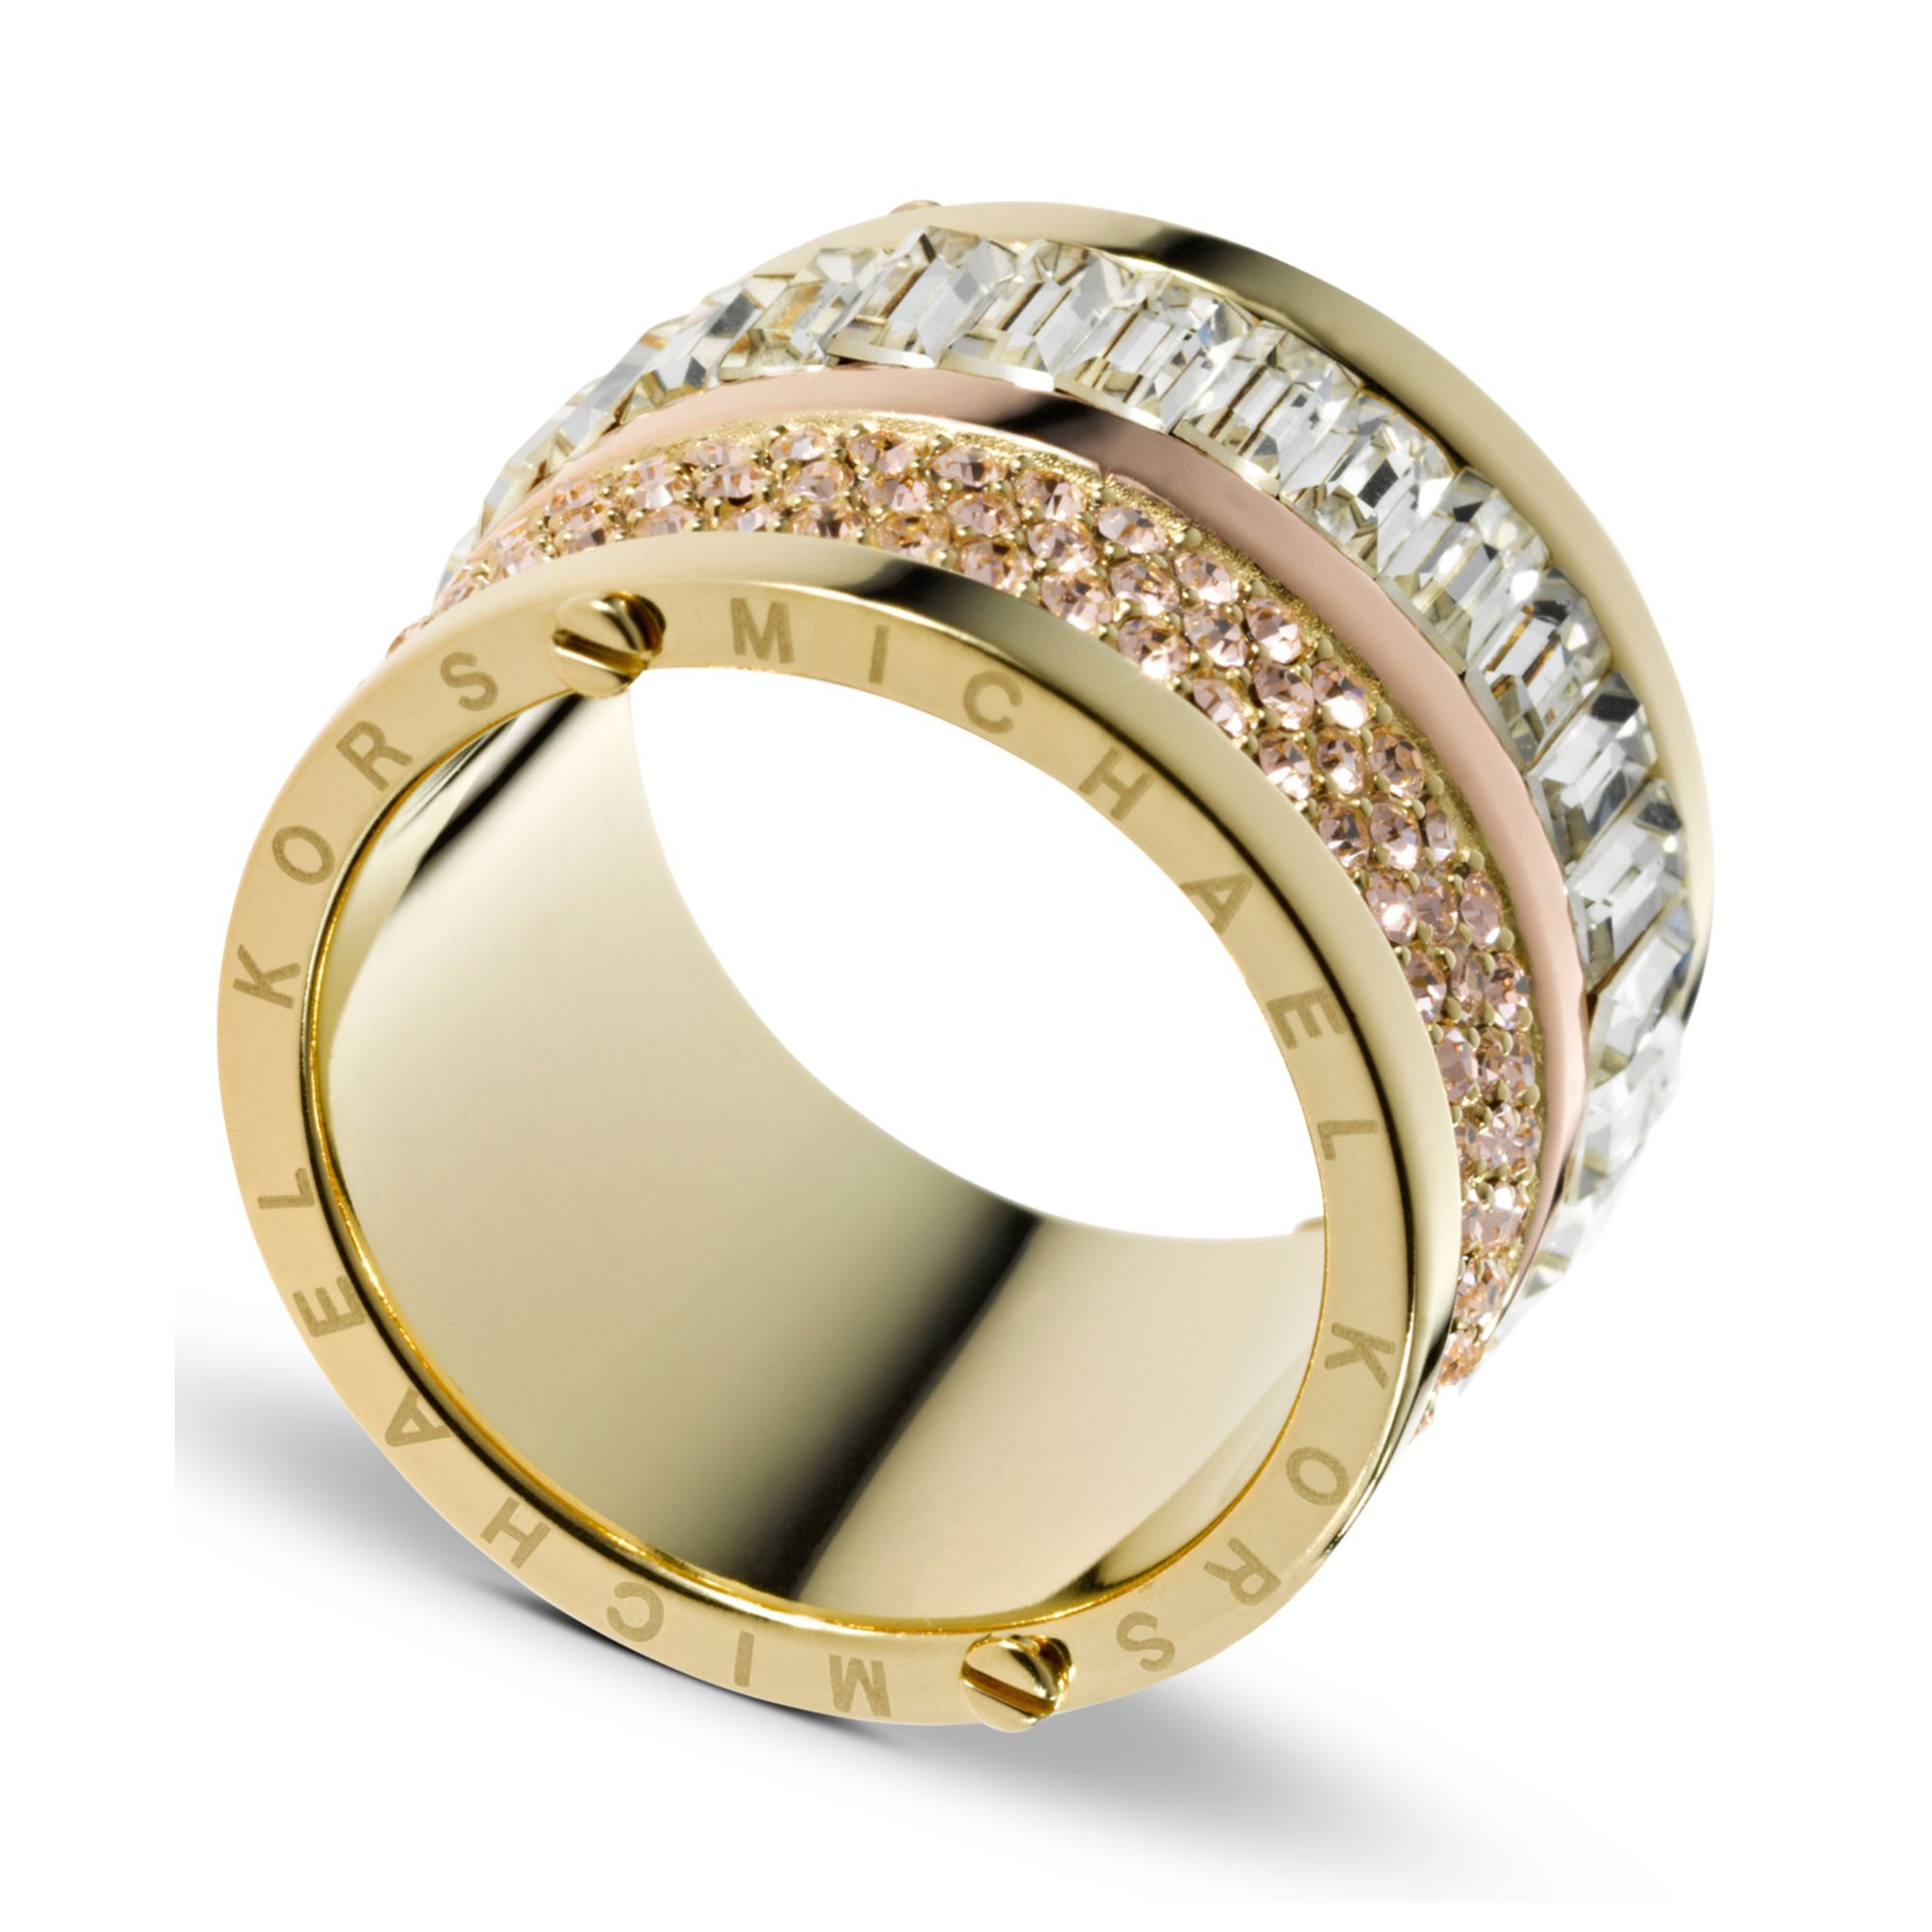 michael kors gold tone pave and stone barrel ring in gold. Black Bedroom Furniture Sets. Home Design Ideas